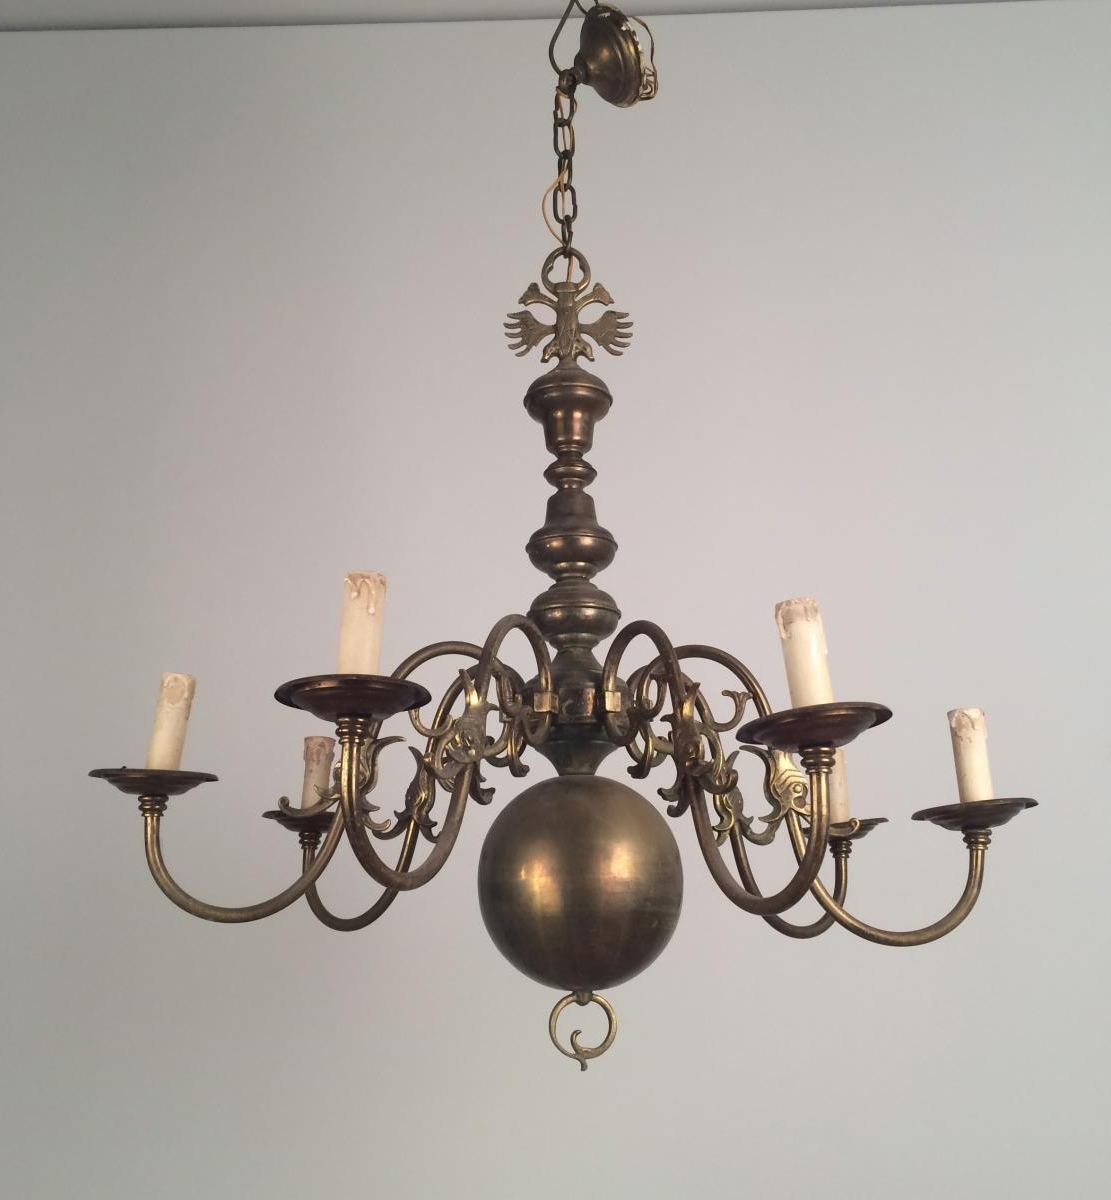 Recent Vintage Brass Chandelier – Chandelier Designs Within Old Brass Chandelier (View 12 of 15)